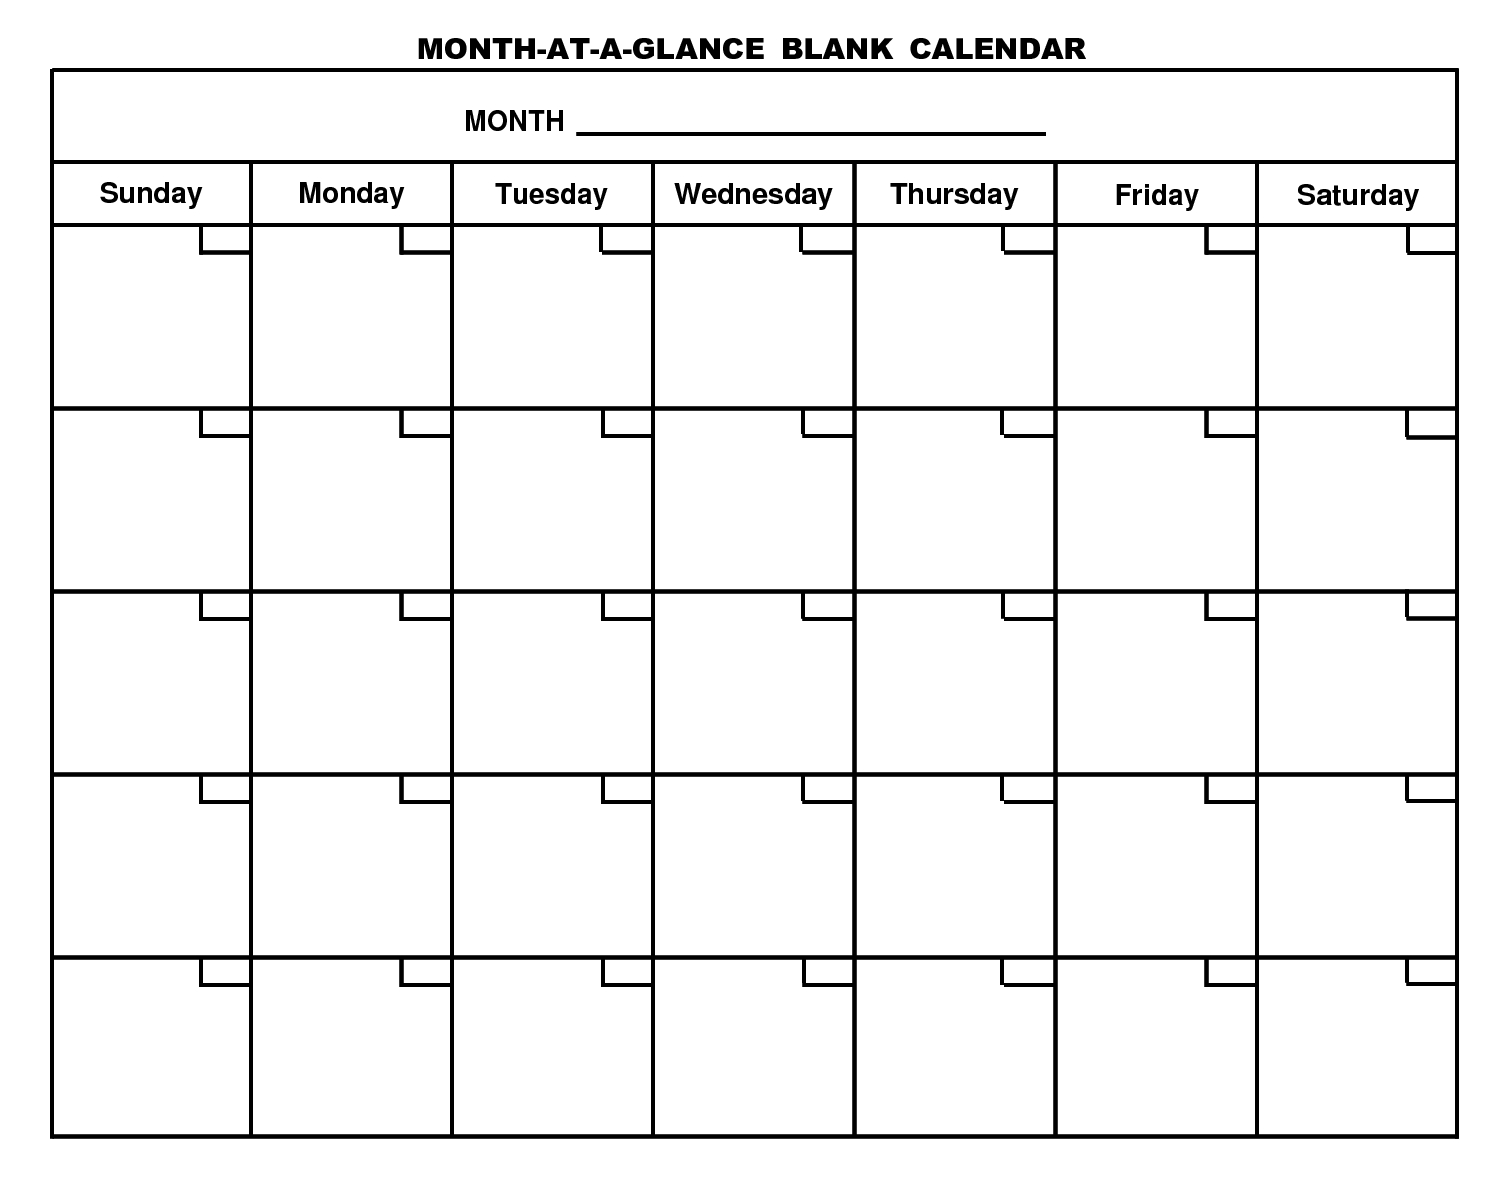 Free Monthly At A Glance Calendar | Online Telugu Calendar Exceptional Free Month At Glance Calendar